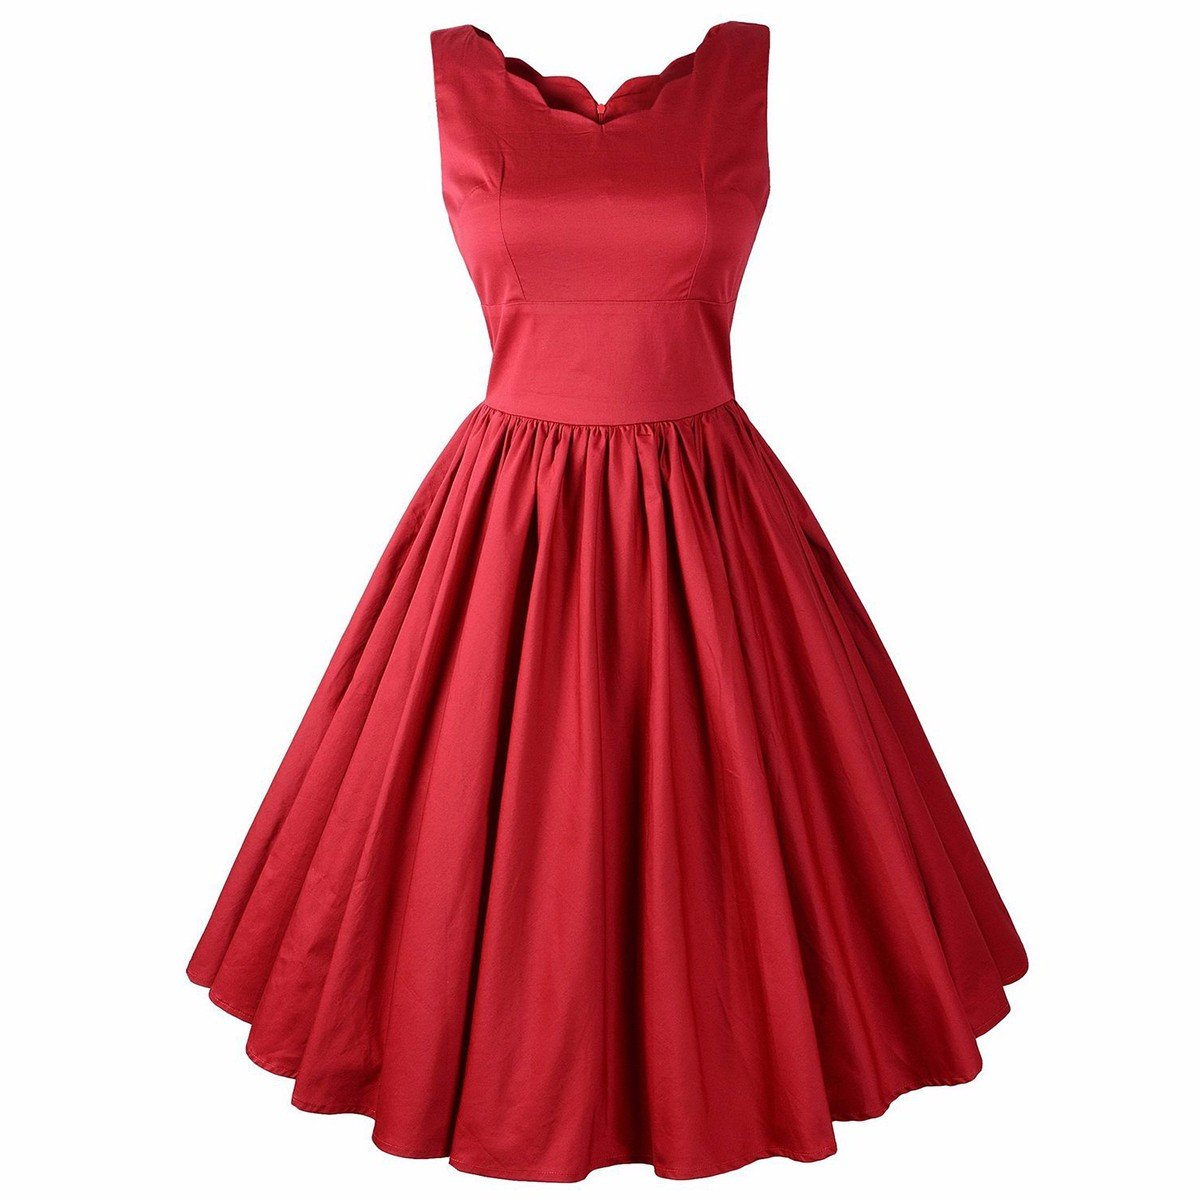 Samtree Womens Polka Dot Solid Color V Neck Sleeveless Vintage Party Swing Dress(XL(12),Red)